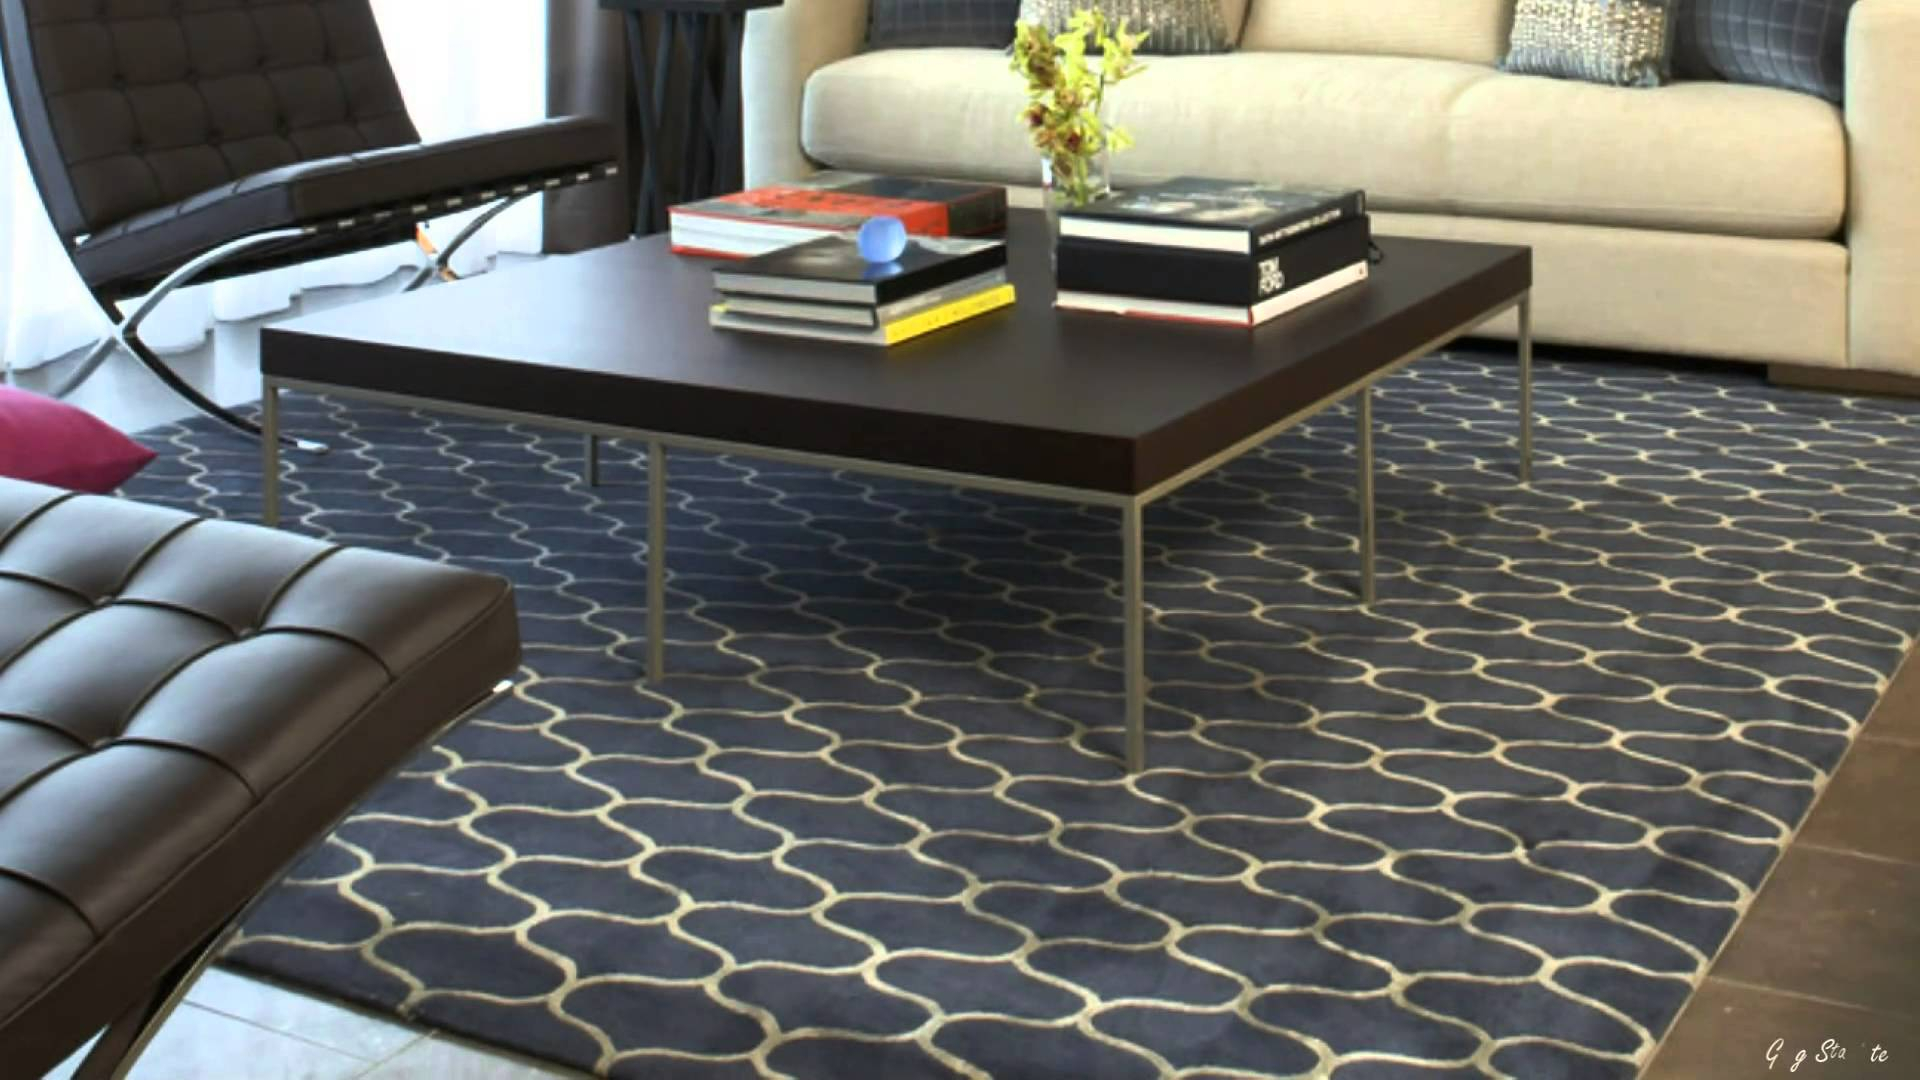 10 Nice Carpeting Ideas For Living Room excellent carpet ideas for living room pool picture is like carpet 2020